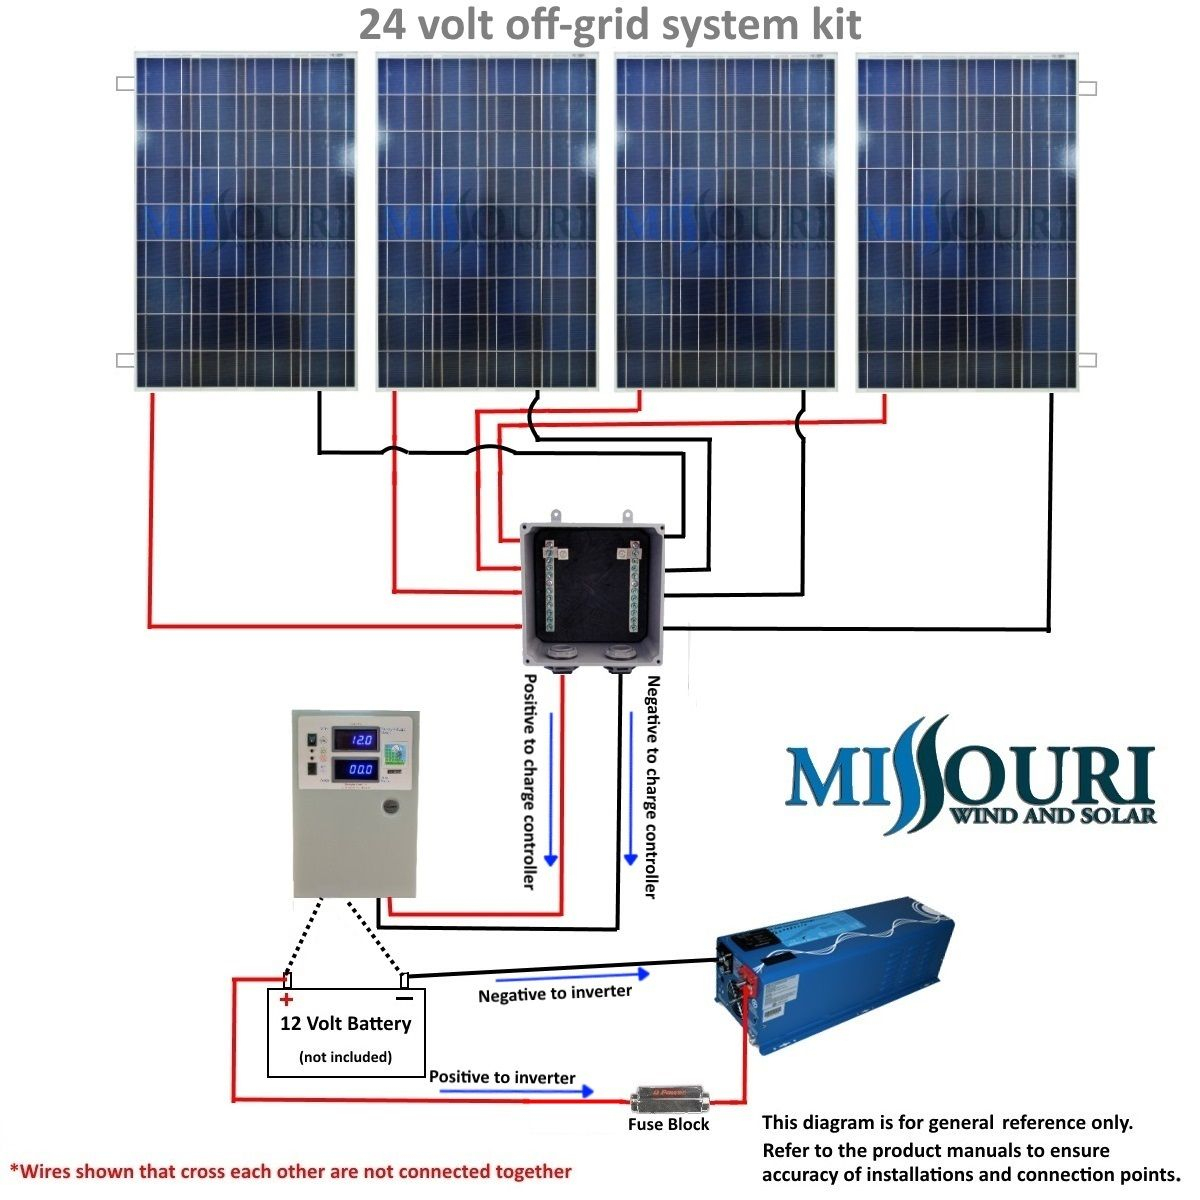 1000 Watt 24 Volt Off Grid Solar Panel Kit | Techno | Solar Panels - Solar Panel Wiring Diagram